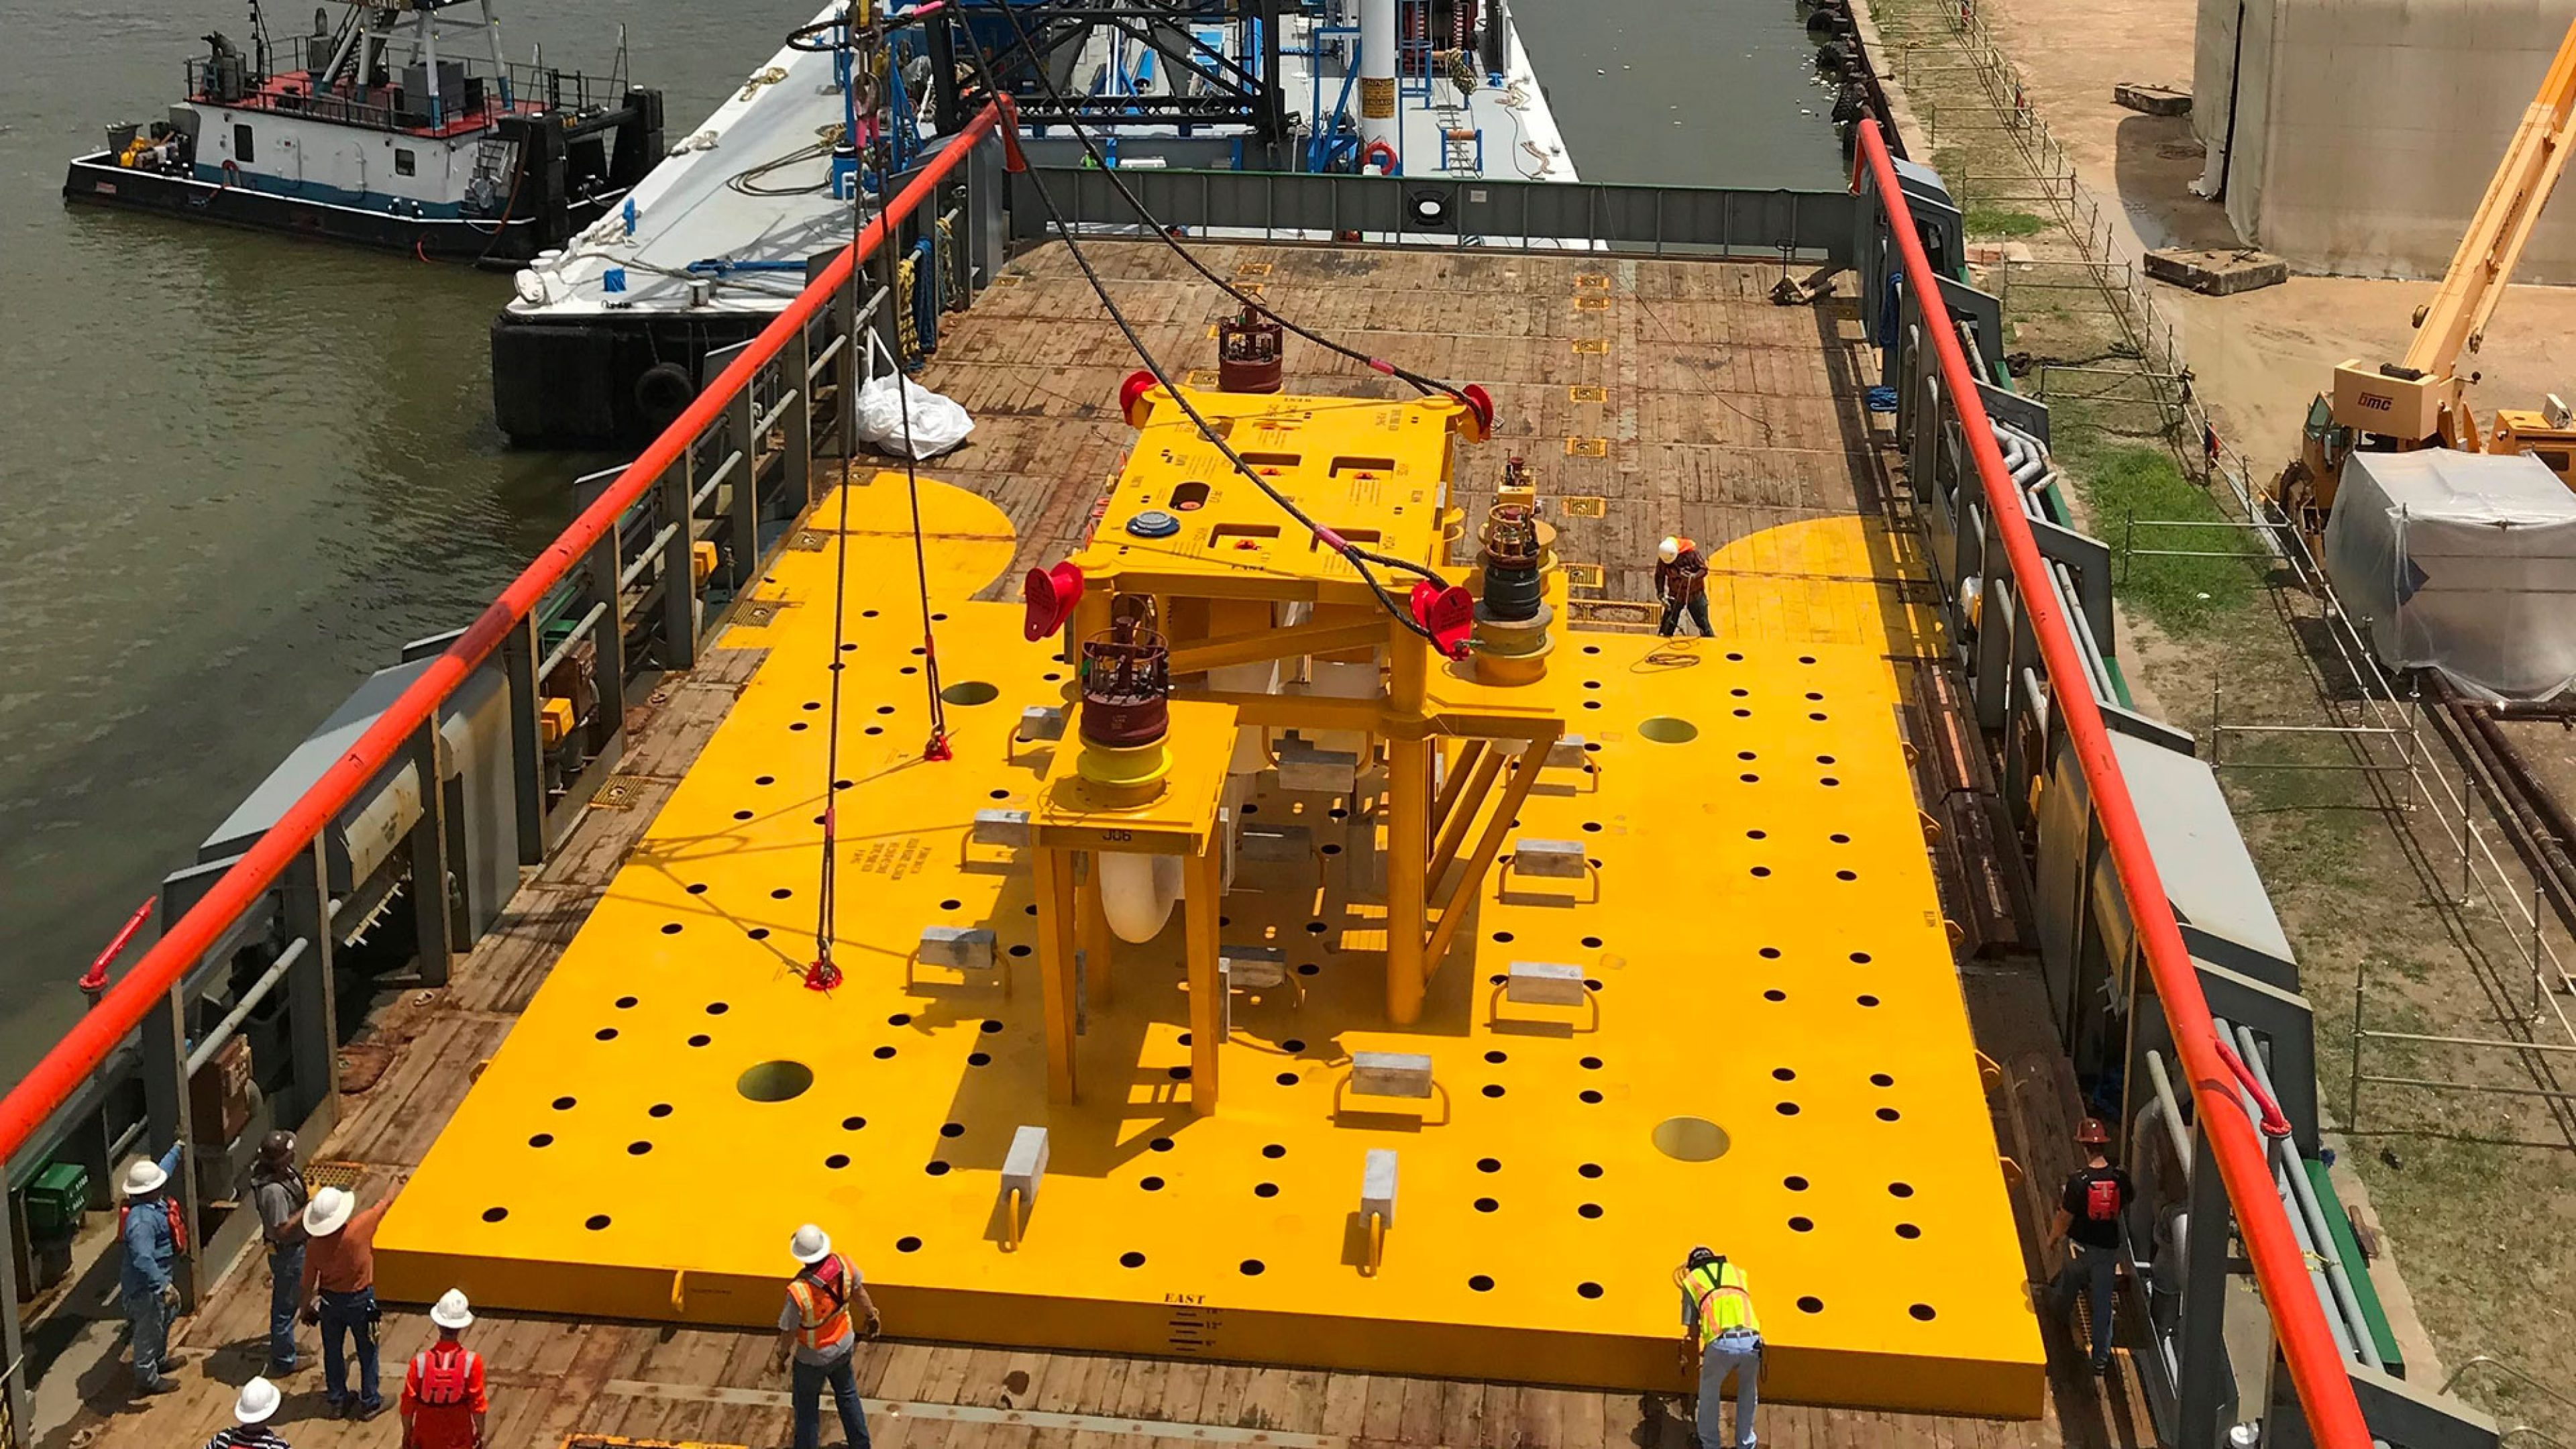 THNWX subsea manifold being loaded onto offshore supply vessel at the Houston Ship Channel.